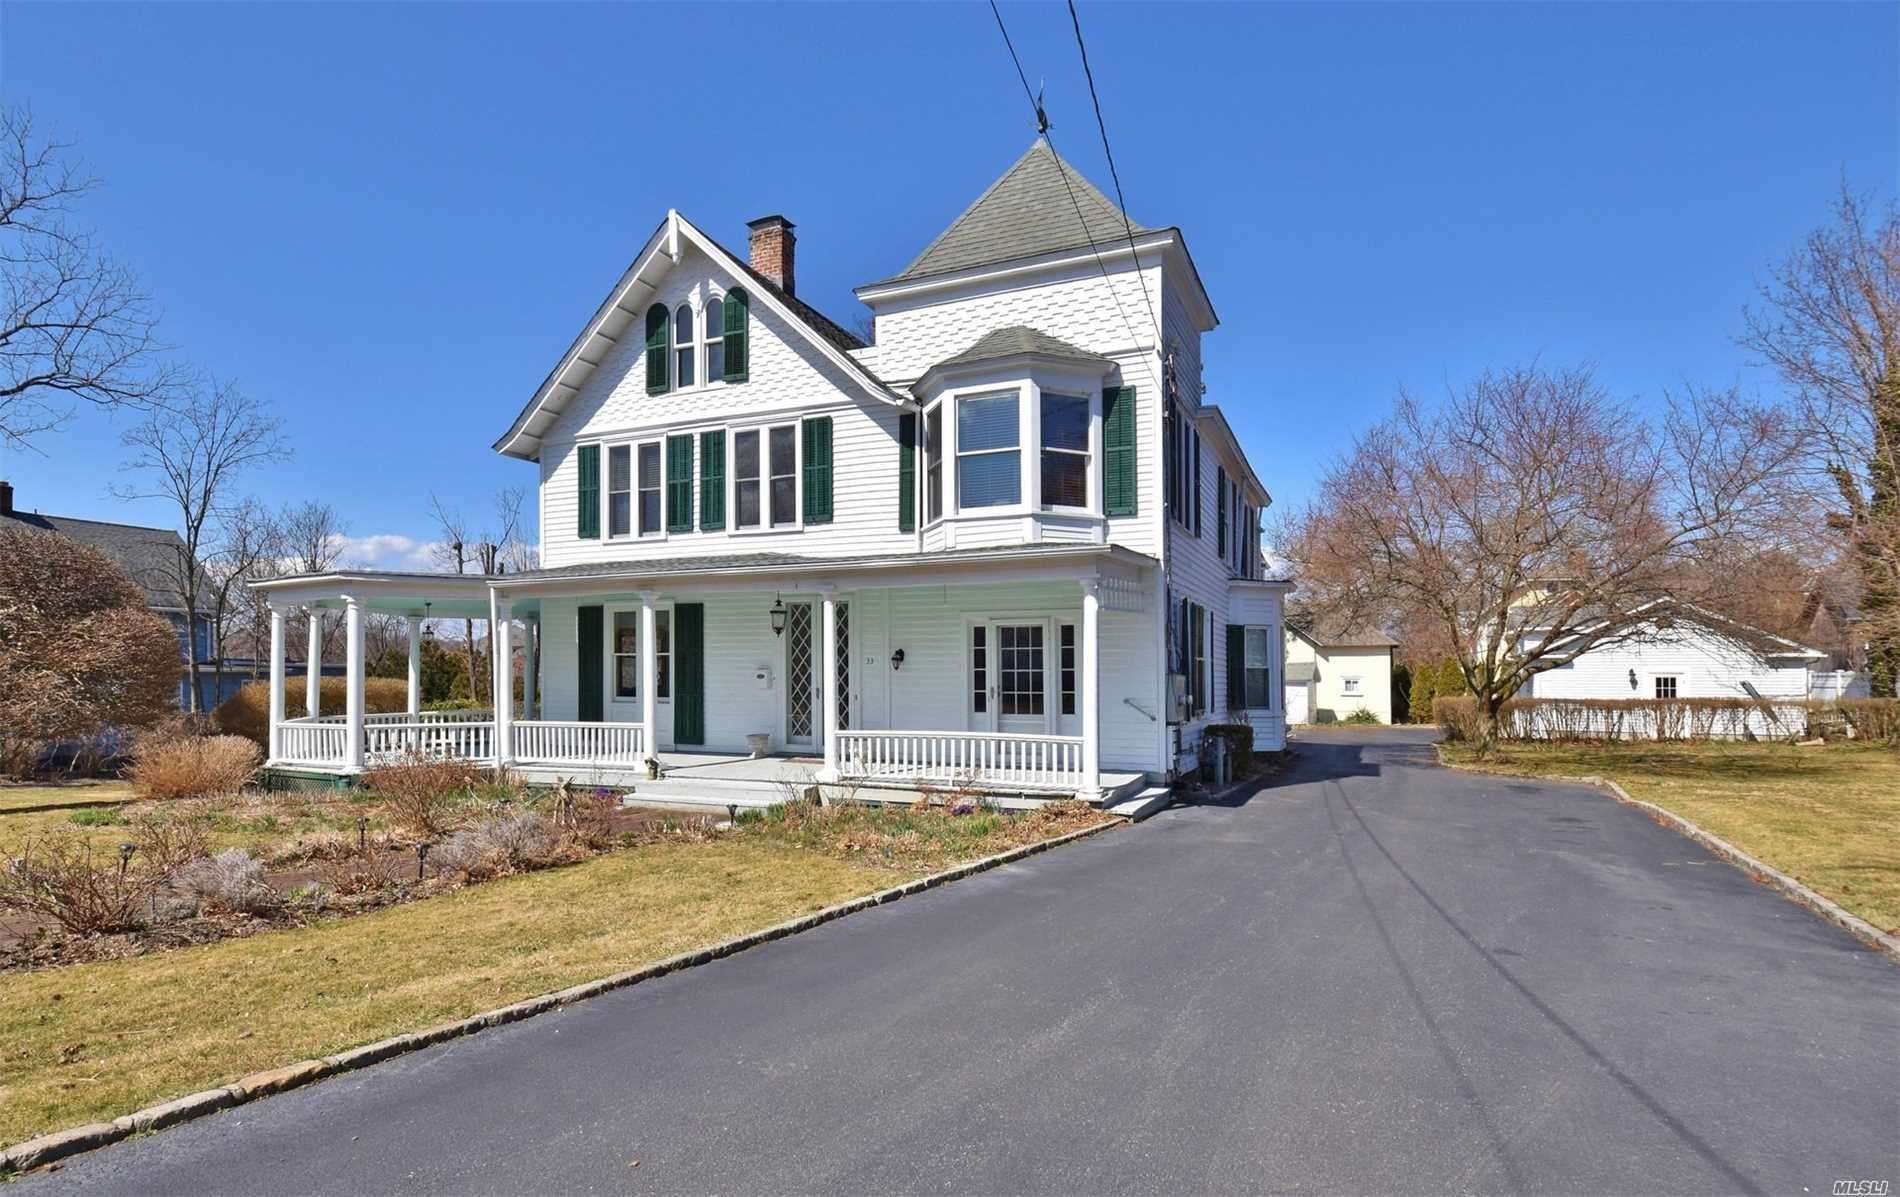 Stunning Early 1900s Colonial Just Minutes To Huntington Village. Spacious Rooms With High Ceilings. Kitchen And Baths Are Renovated To Today's Standards. Grand Covered Wrap Around Porch.Gas Fireplace. Incredible Woodwork And Moldings Throughout. Gas Cooking, Gas Heat And Central Air. This Home Is The Perfect Blend Of Traditional And Modern. Huntington SD#3.